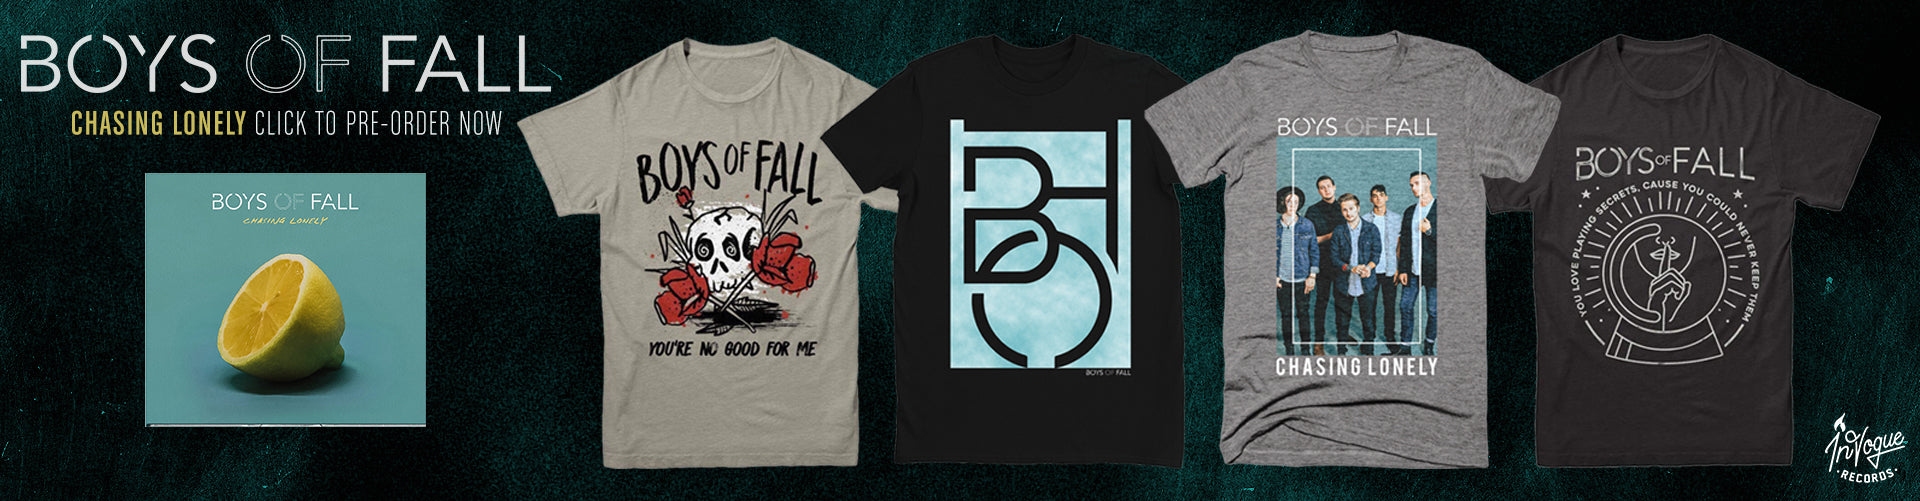 Boys of Fall pre-order collection